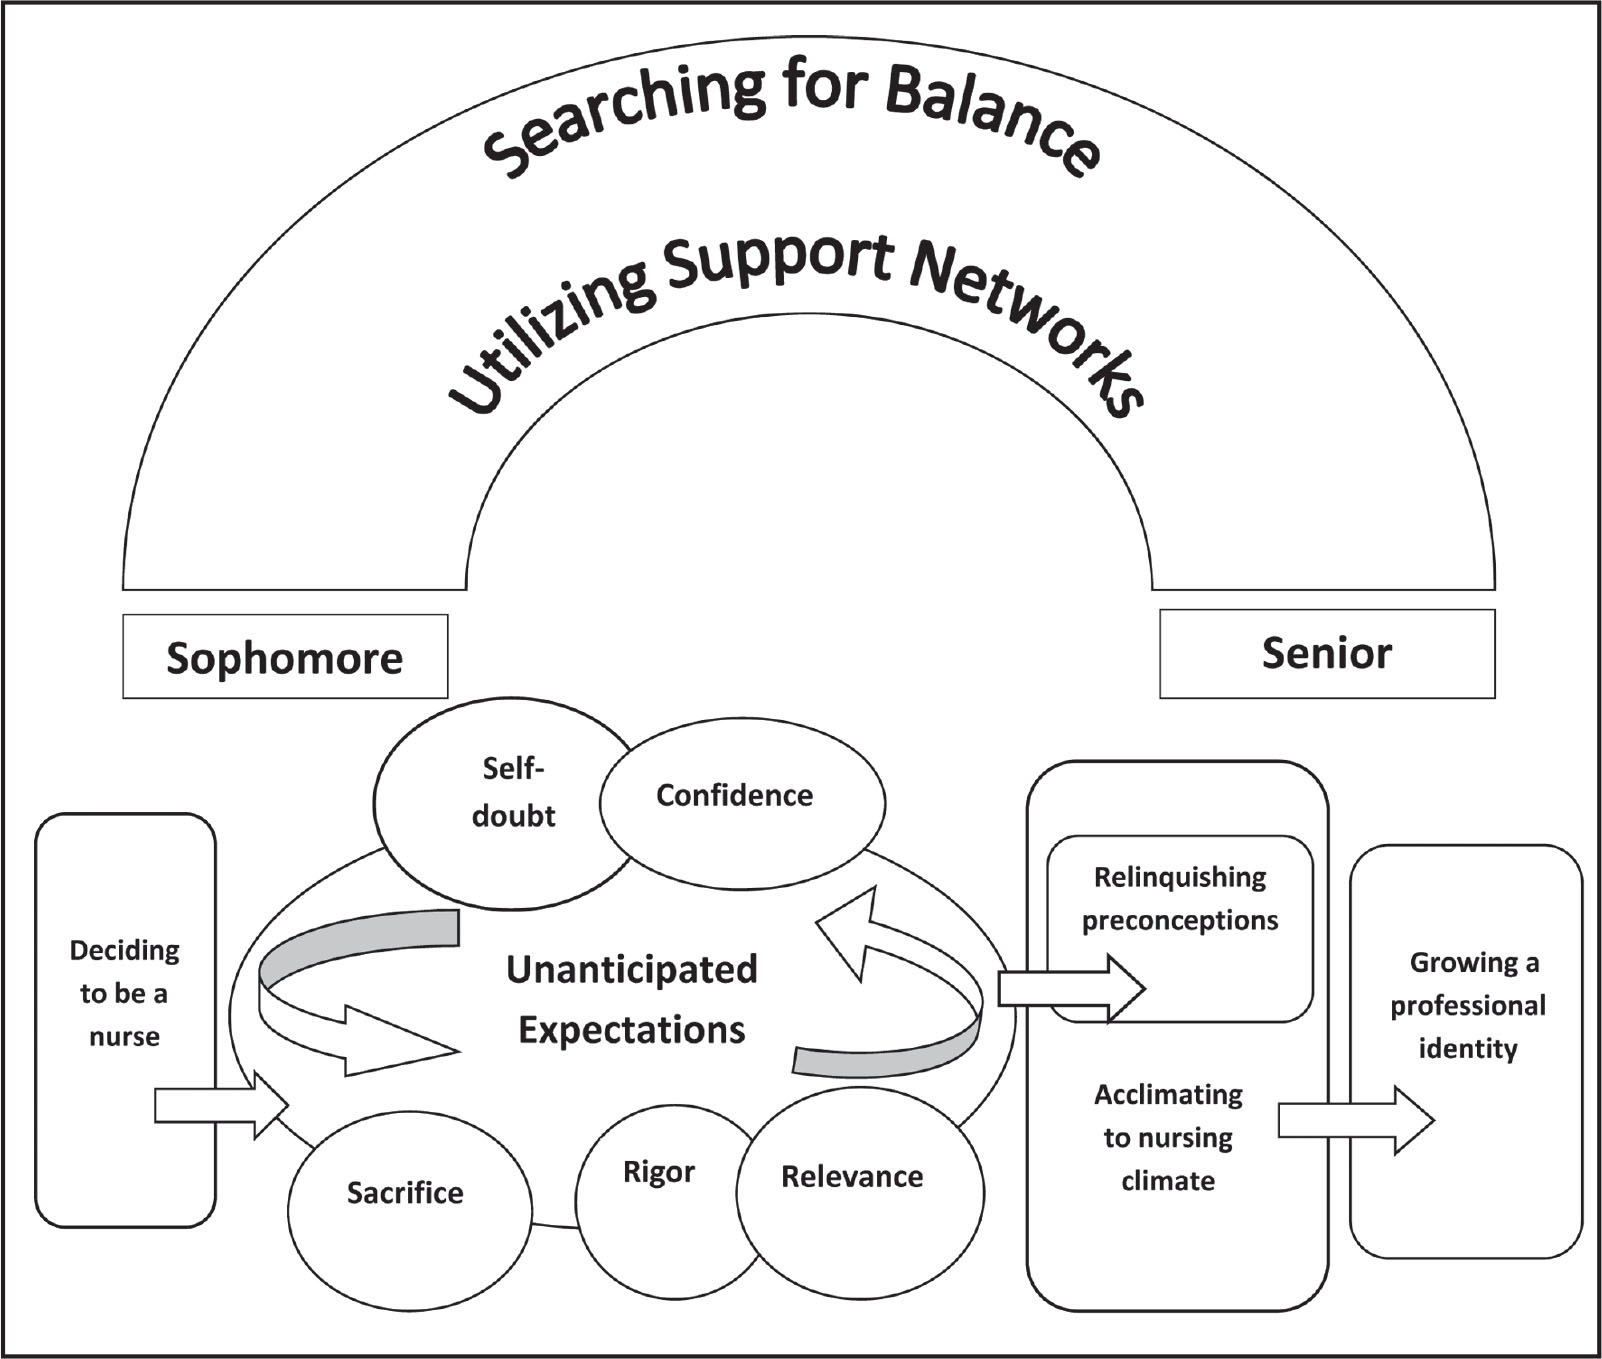 A visual depiction of the theory growing a professional identity. This diagram illustrates the process that began when participants decided to become nurses and were continually searching for balance and using support networks to eventually develop their professional identity.